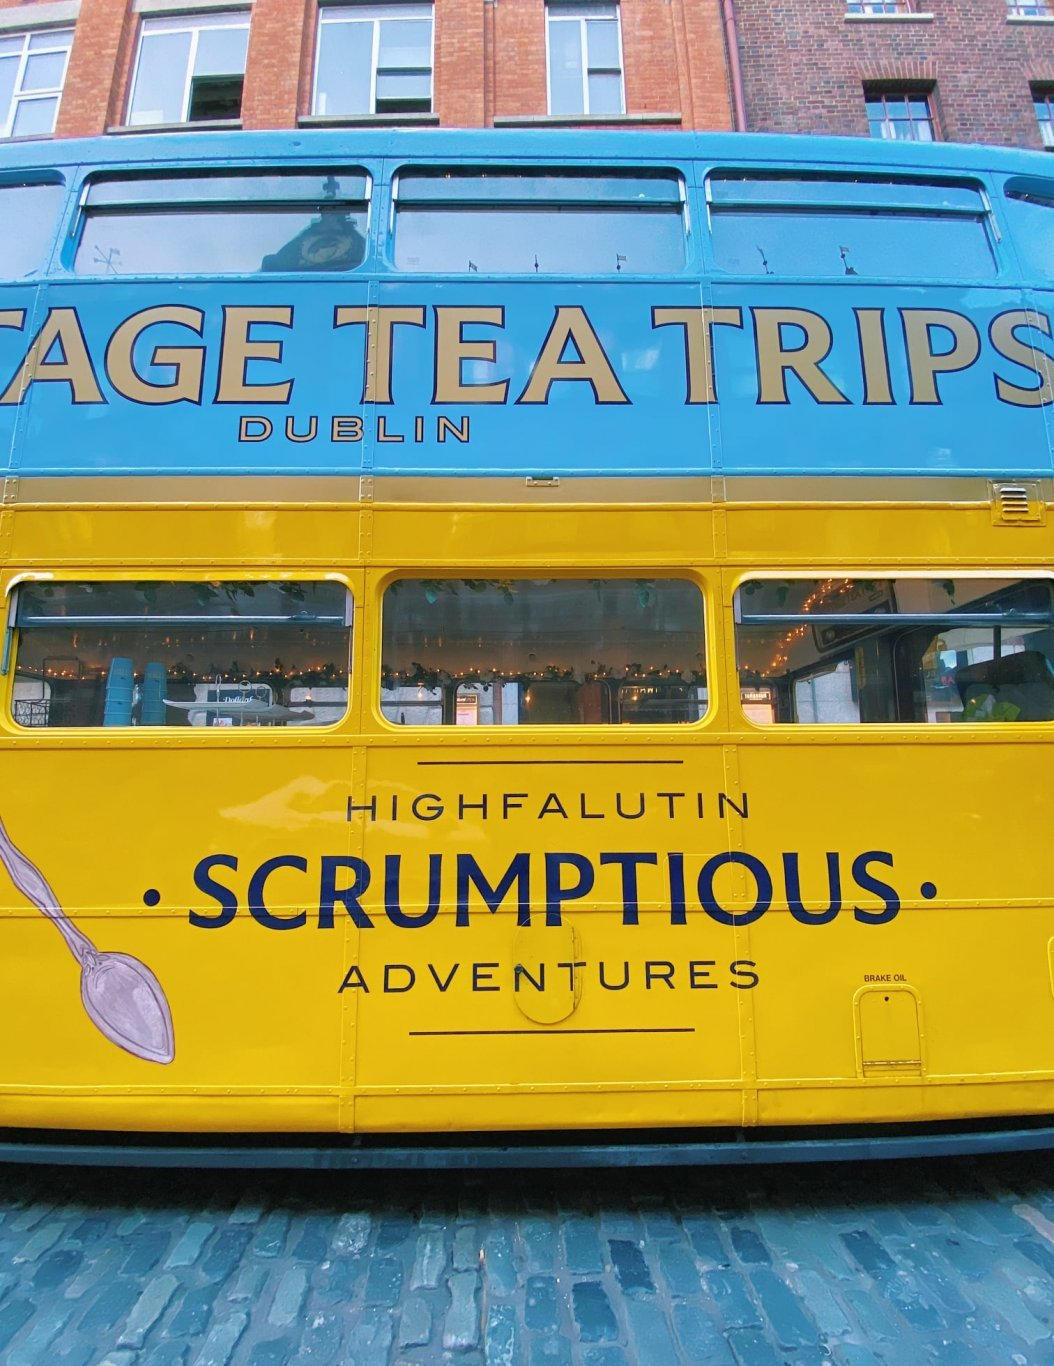 afternoon-tea-tour-bus-dublin